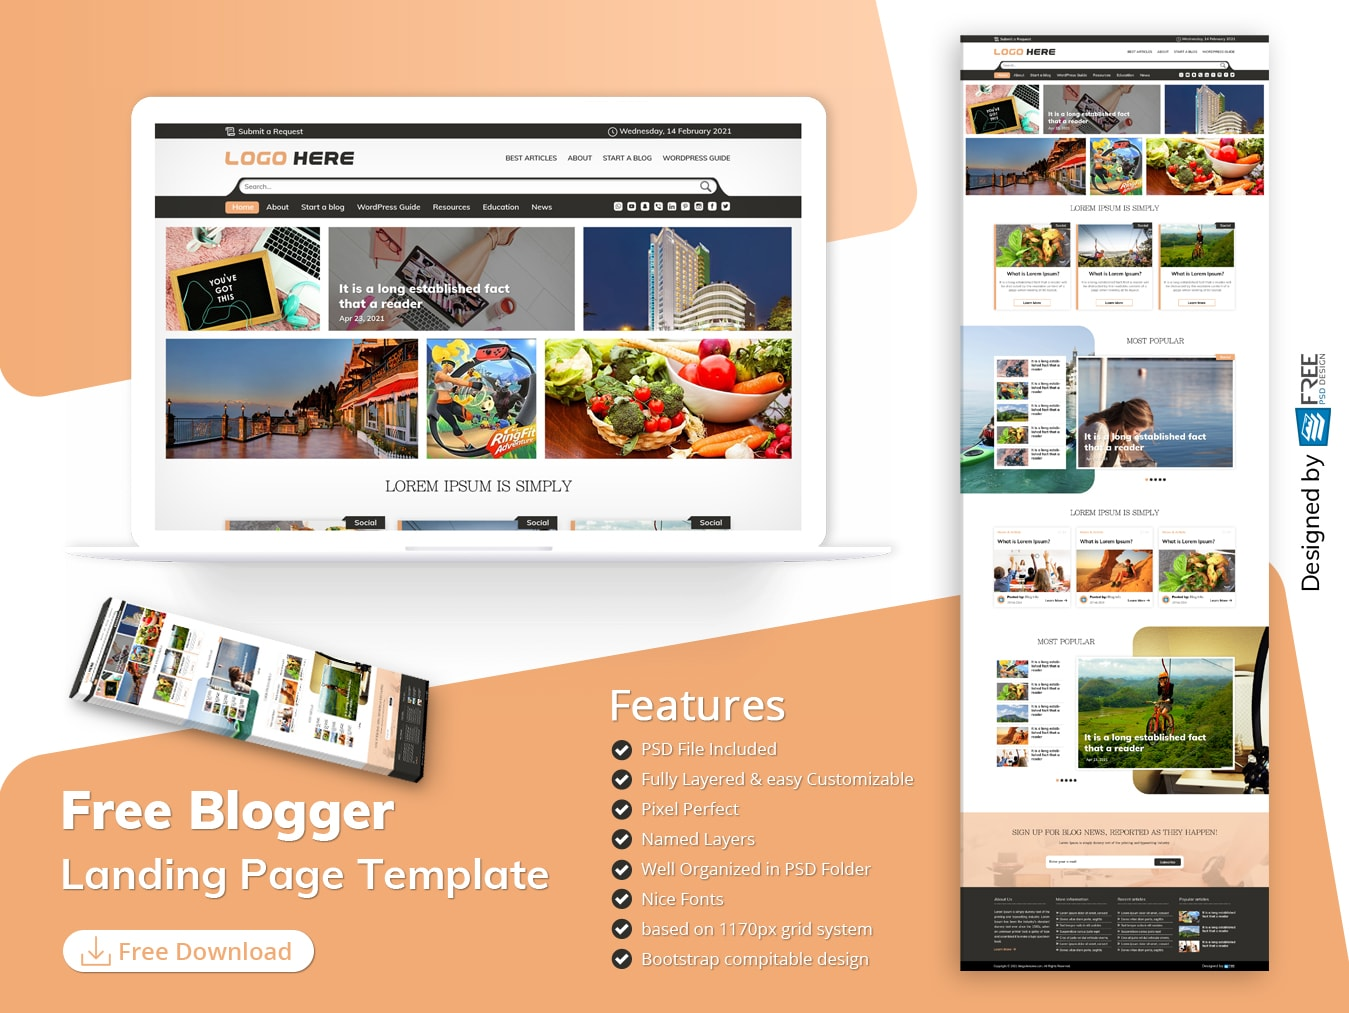 Free Blogger Landing Page Template